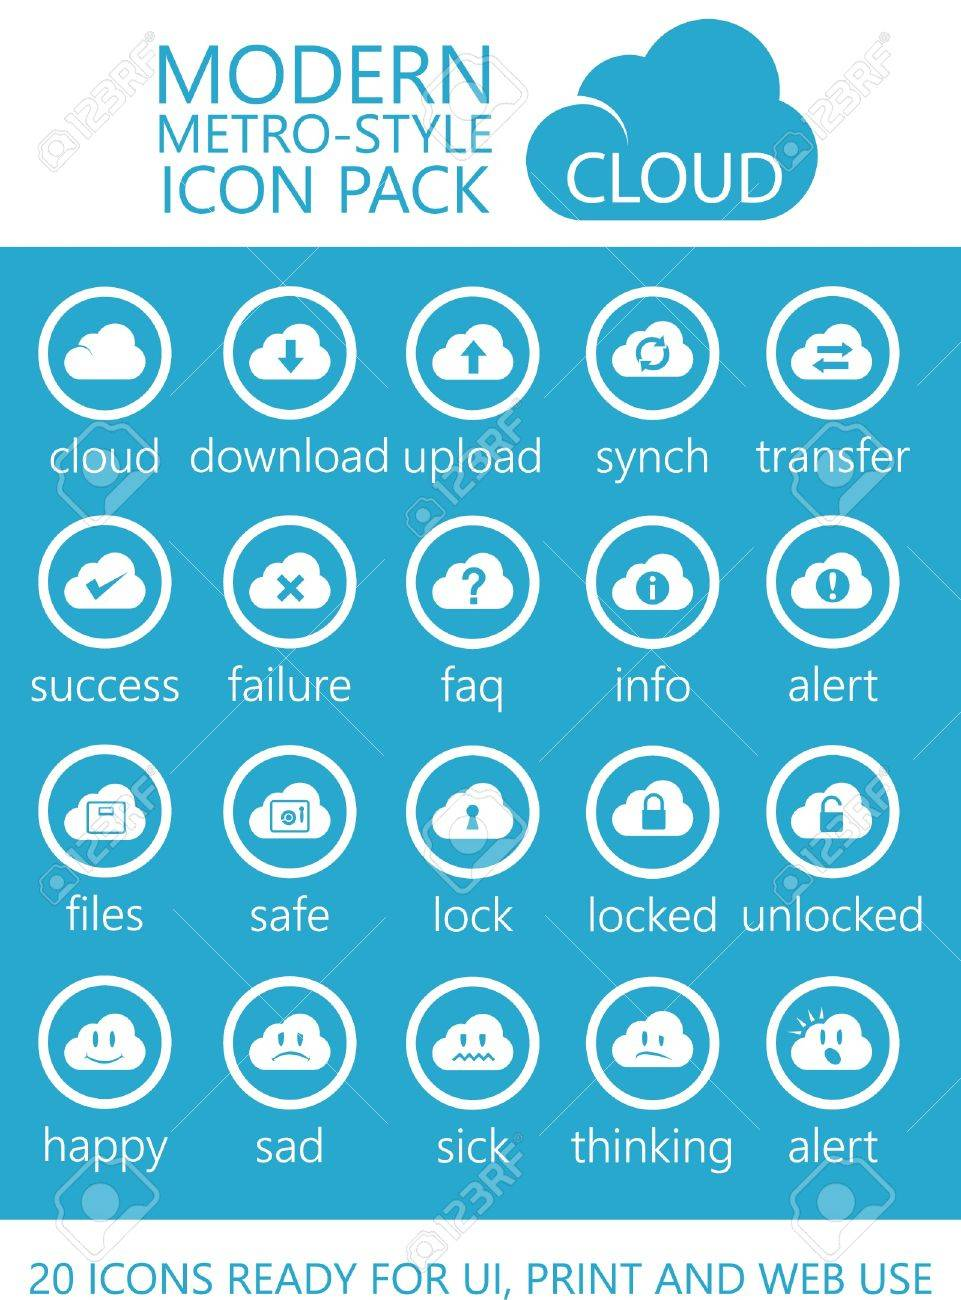 20 Modern Metro-Style Cloud Computing Icons of UI, Print and Web Use Stock Vector - 21659208